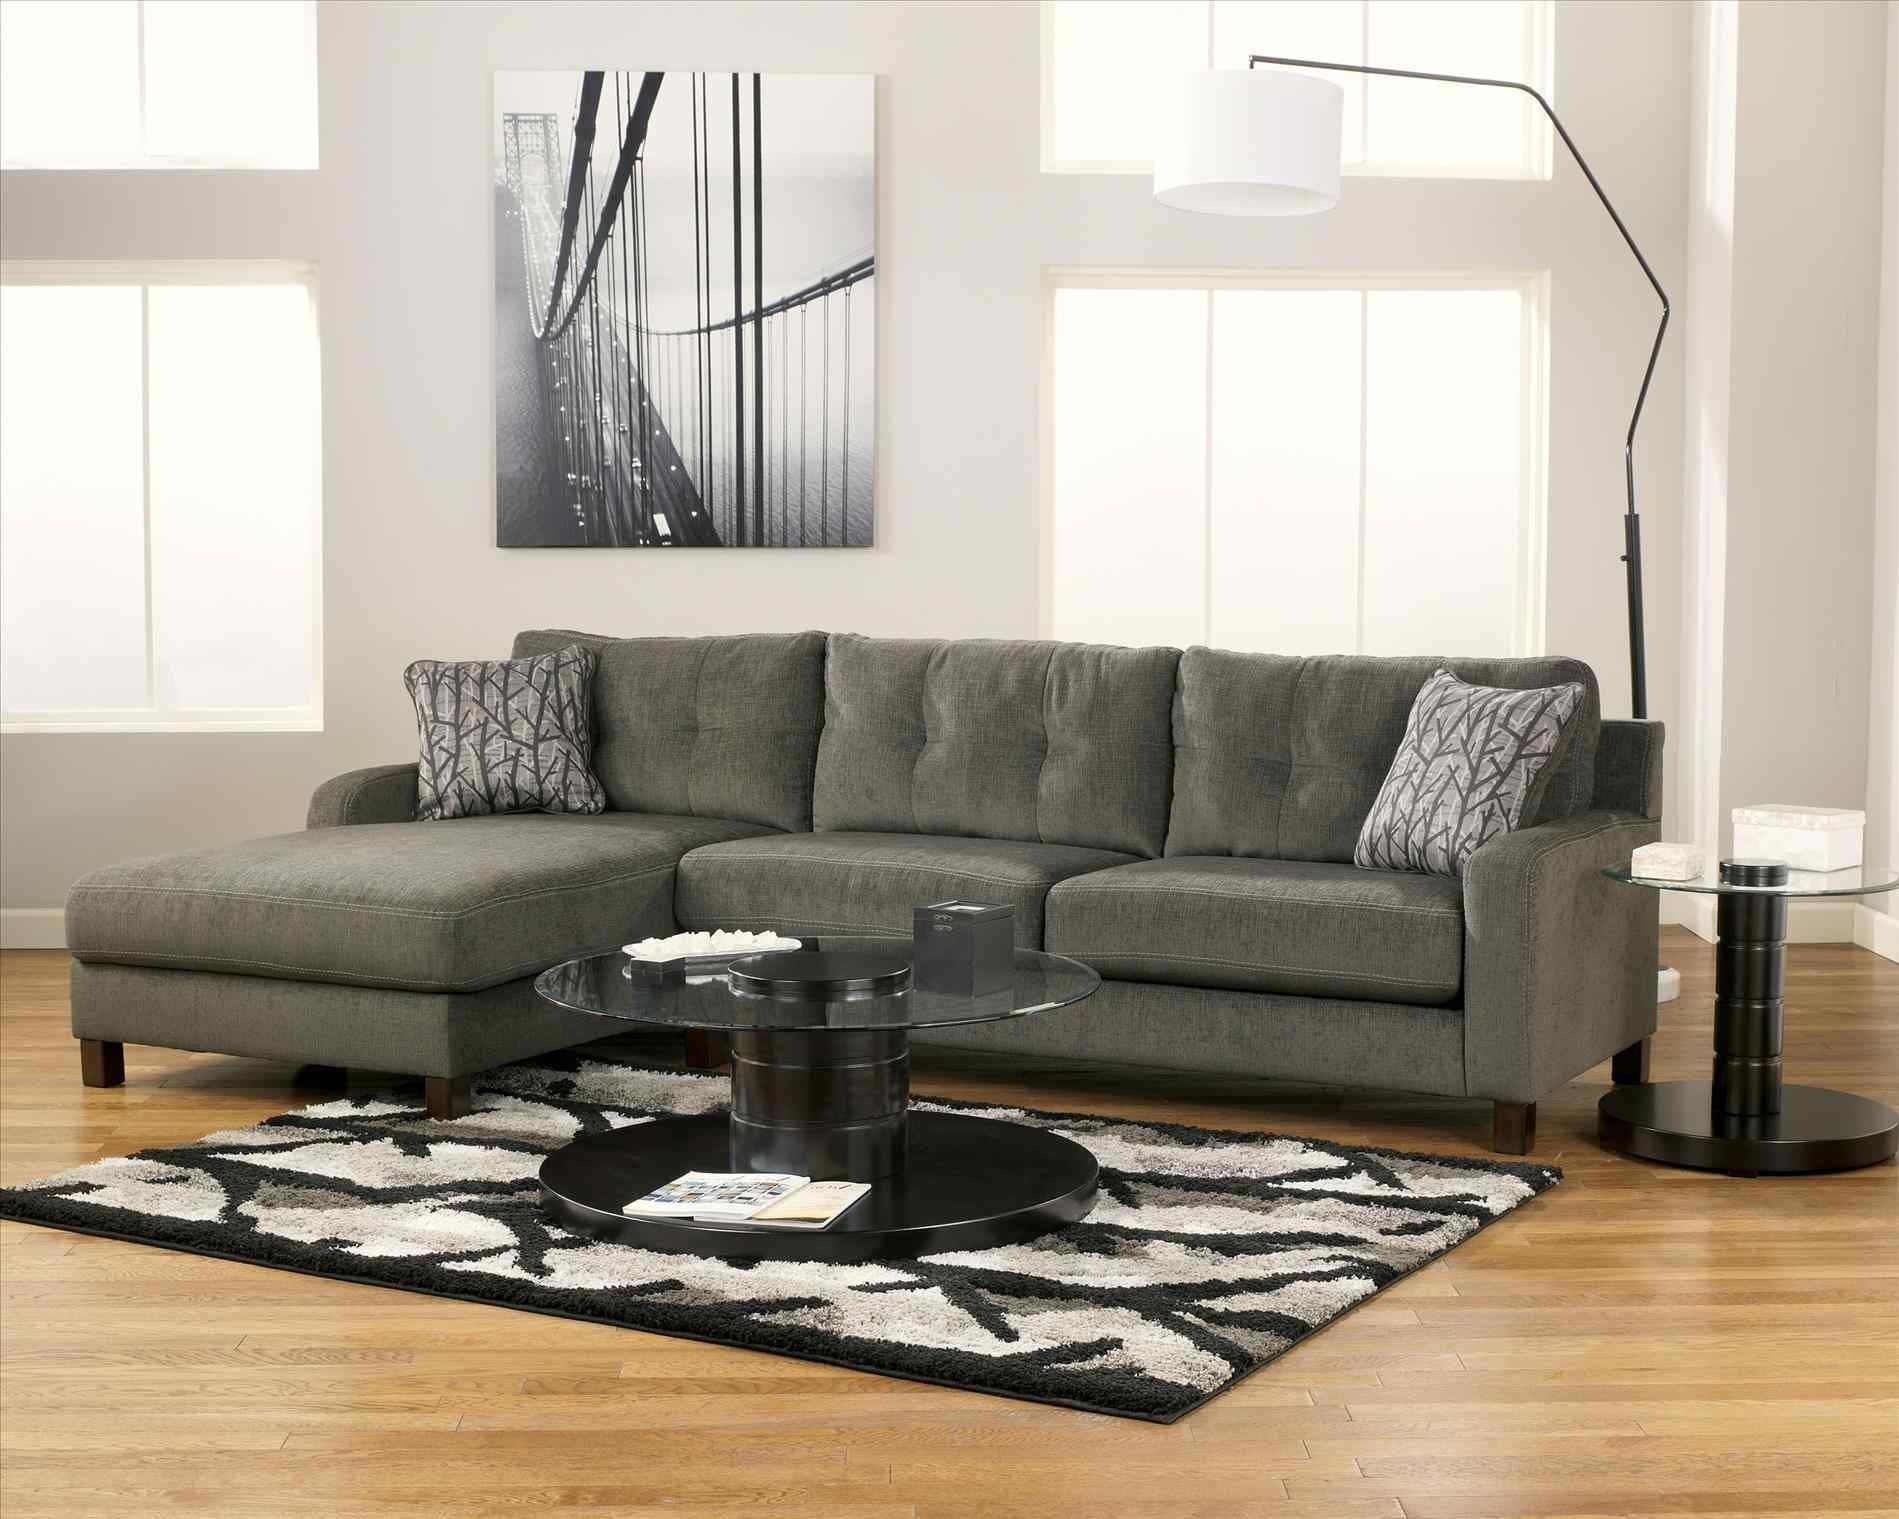 u shape leather sofa integrated with furniture cheap sectional sofas ...